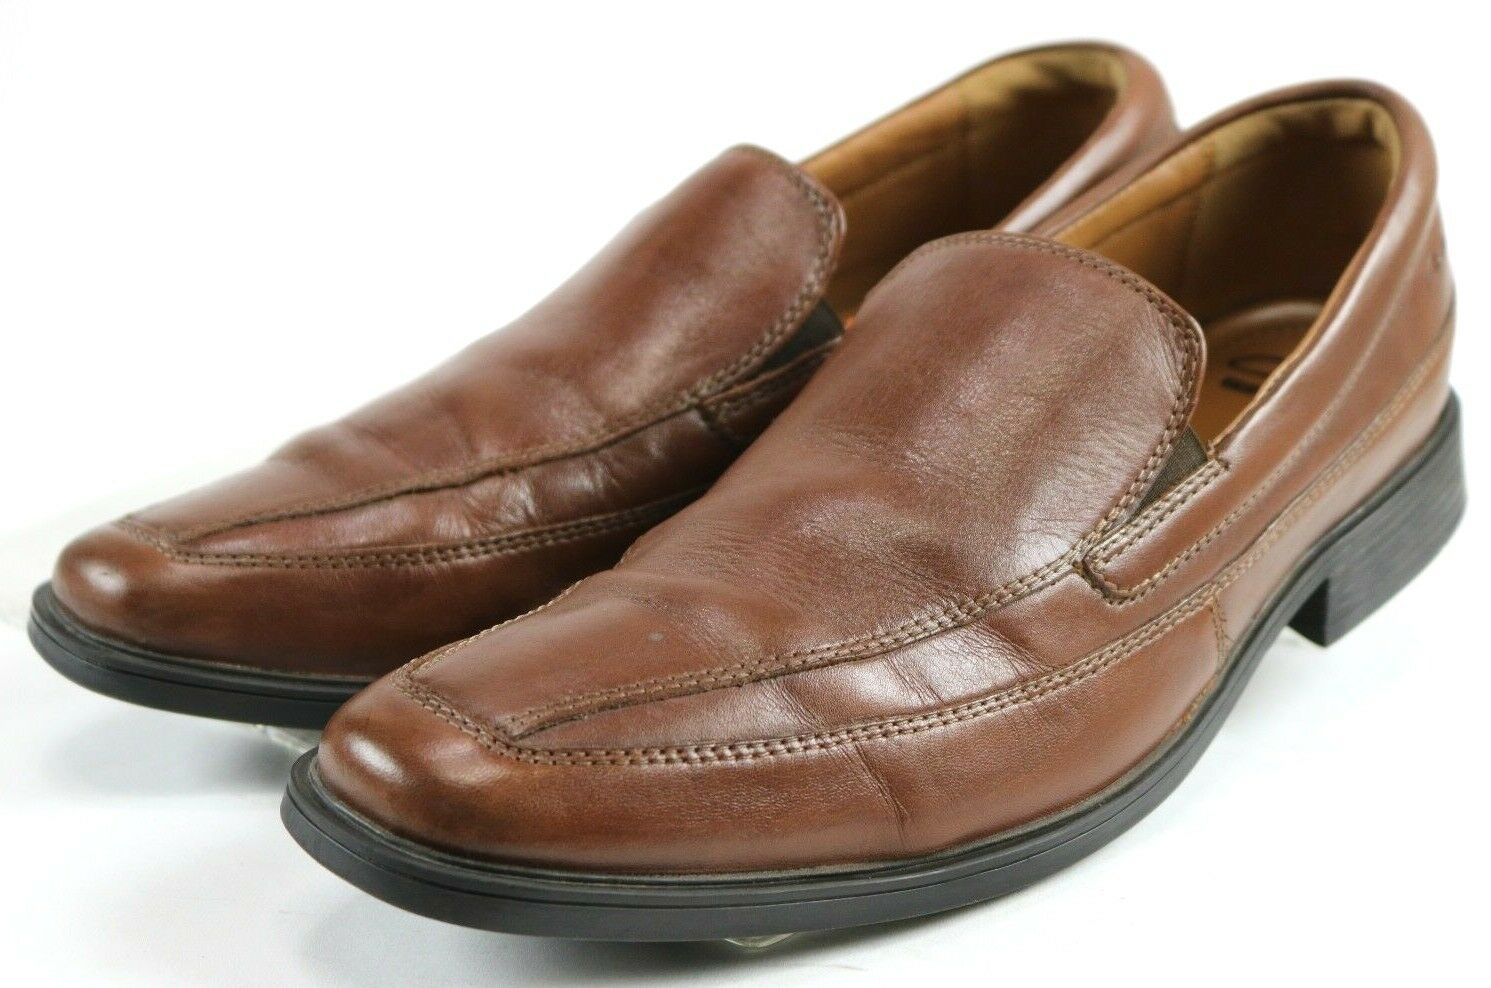 Clarks Collection Loafers Men's  110 Slip-On Dress shoes Size 10 Leather Brown